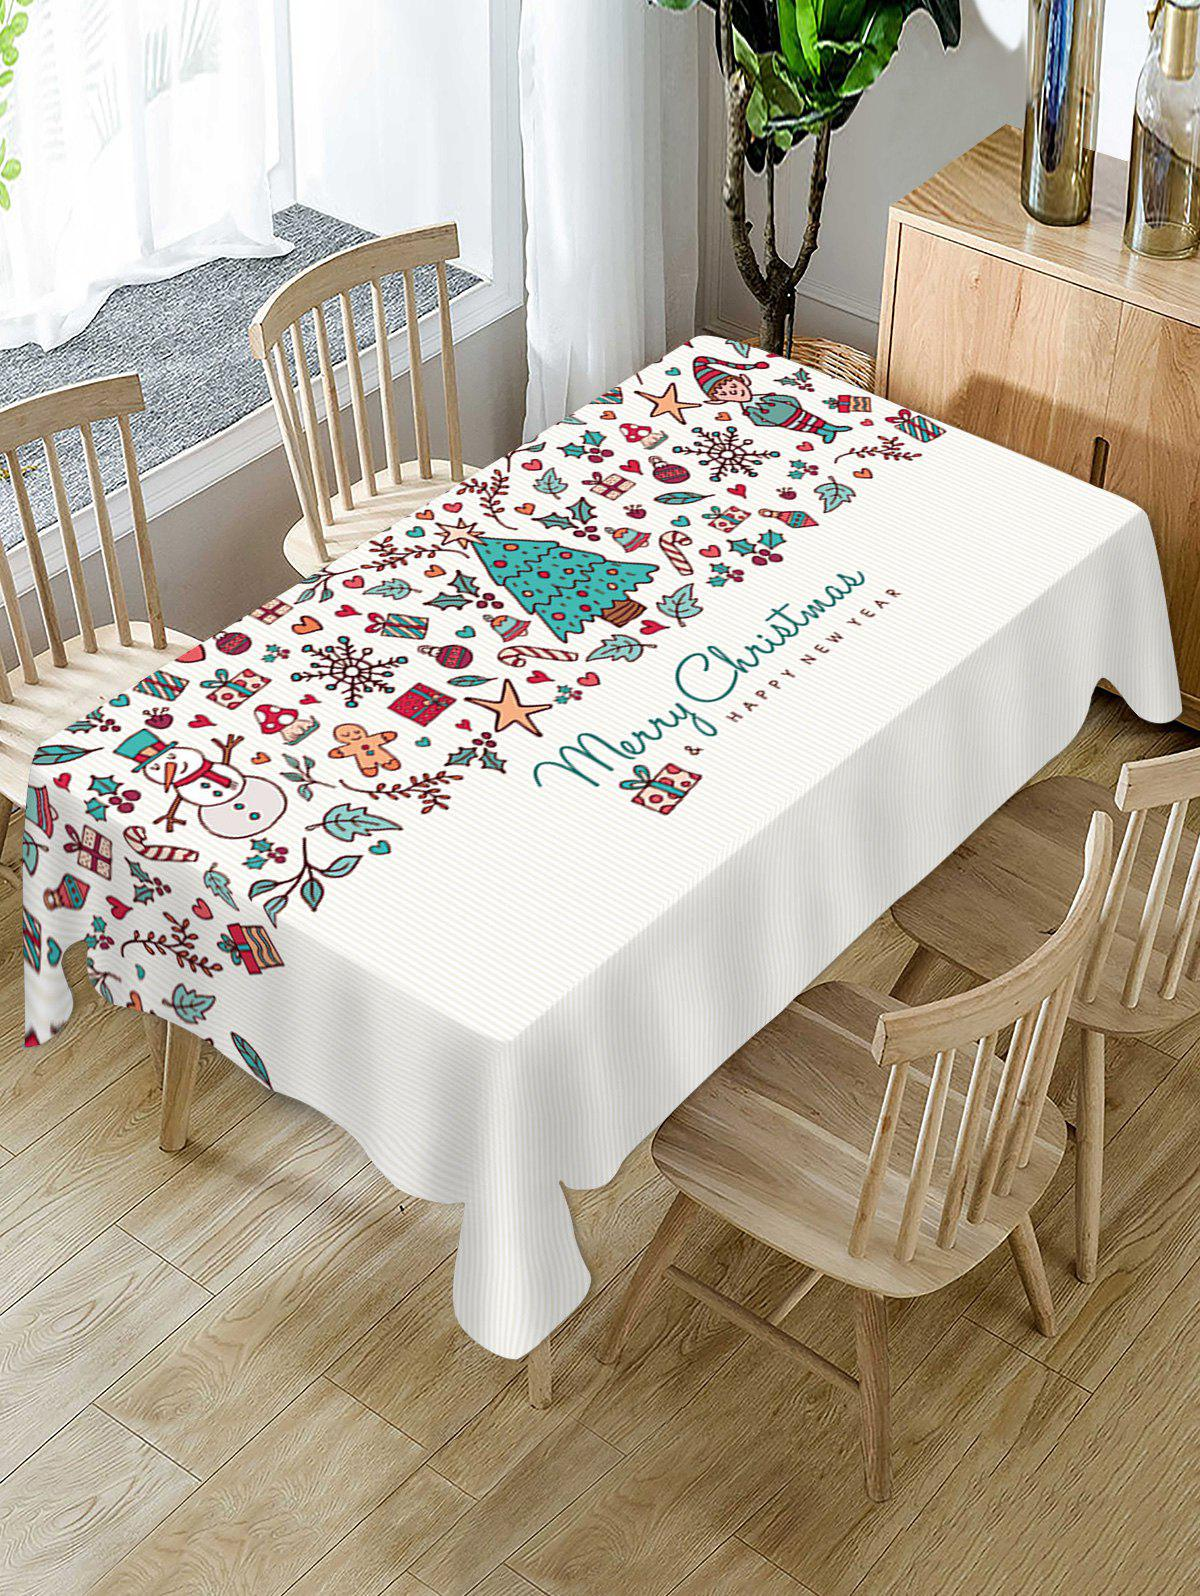 Merry Christmas Tree Fabric Waterproof Table Cloth - WHITE W55 X L55 INCH